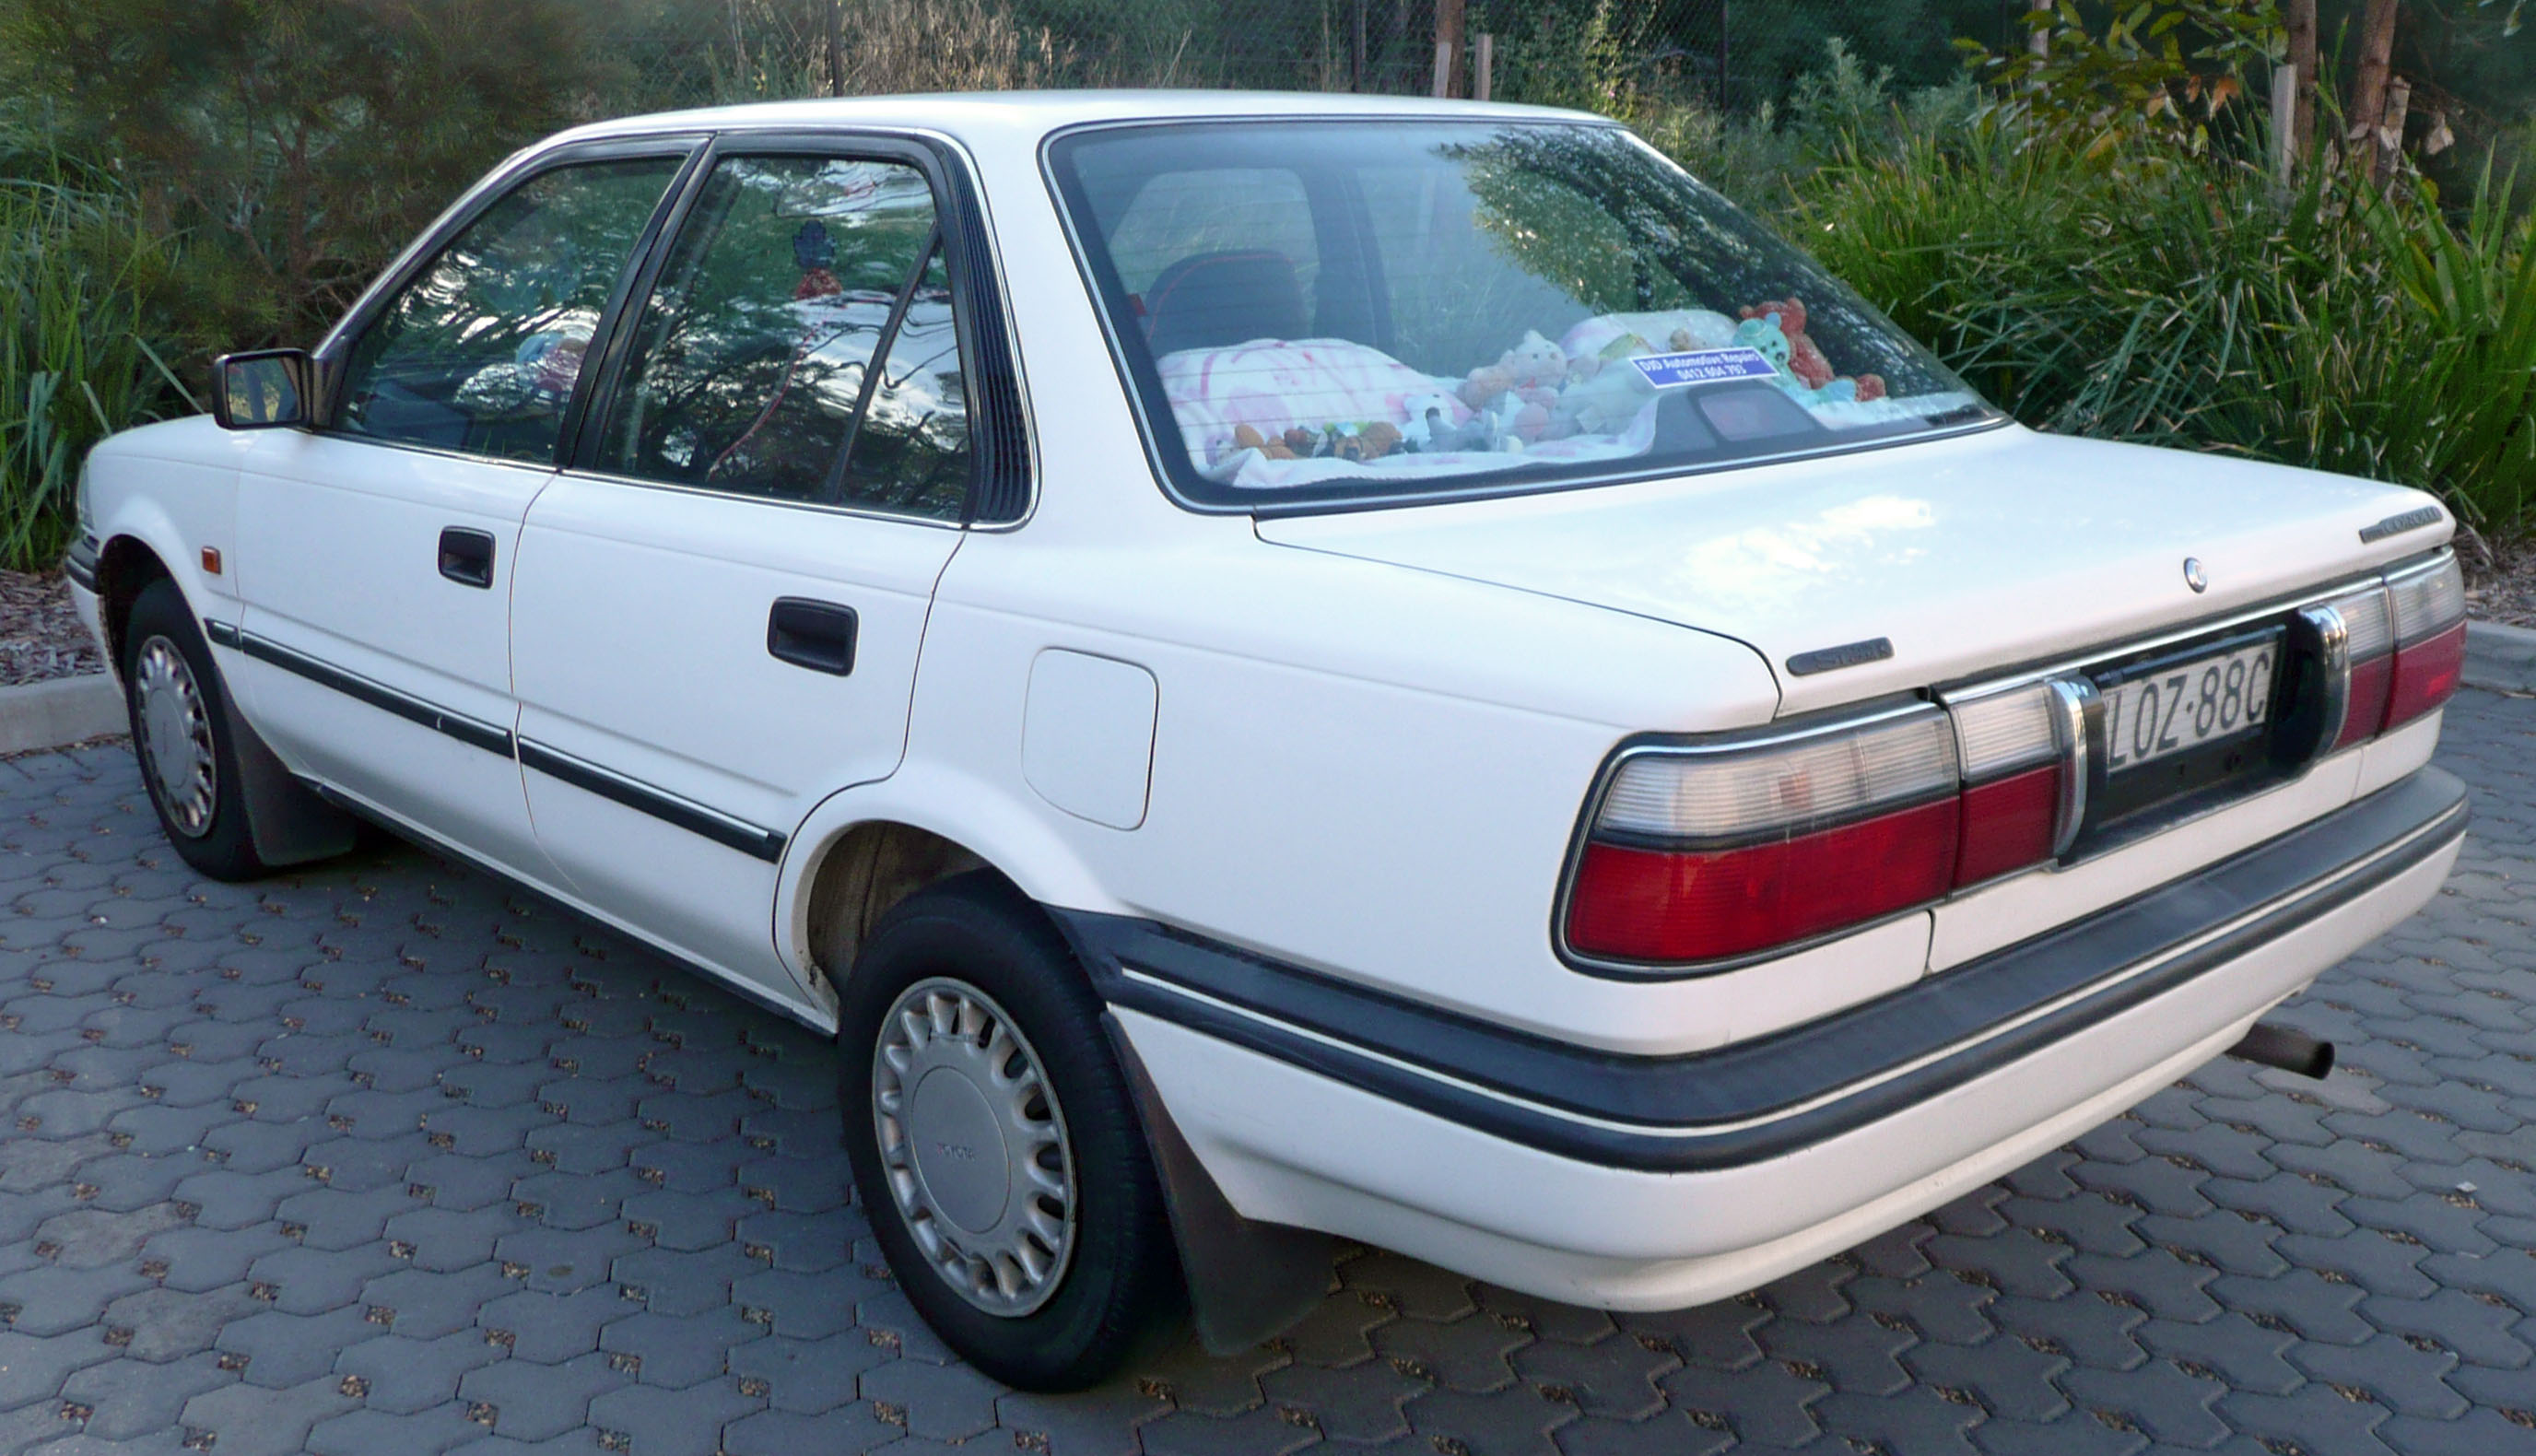 File:1991-1992 Toyota Corolla (AE94) CSi sedan (2009-08-29 ...